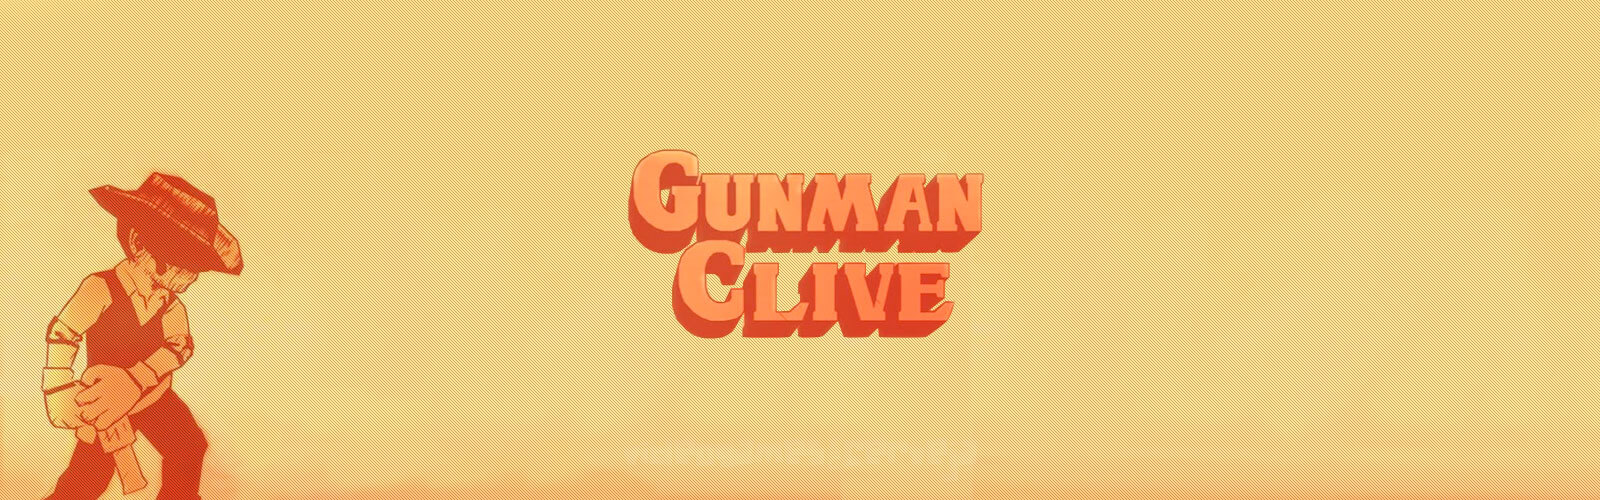 Análise - Gunman Clive (Android - Xperia PLAY) Cover